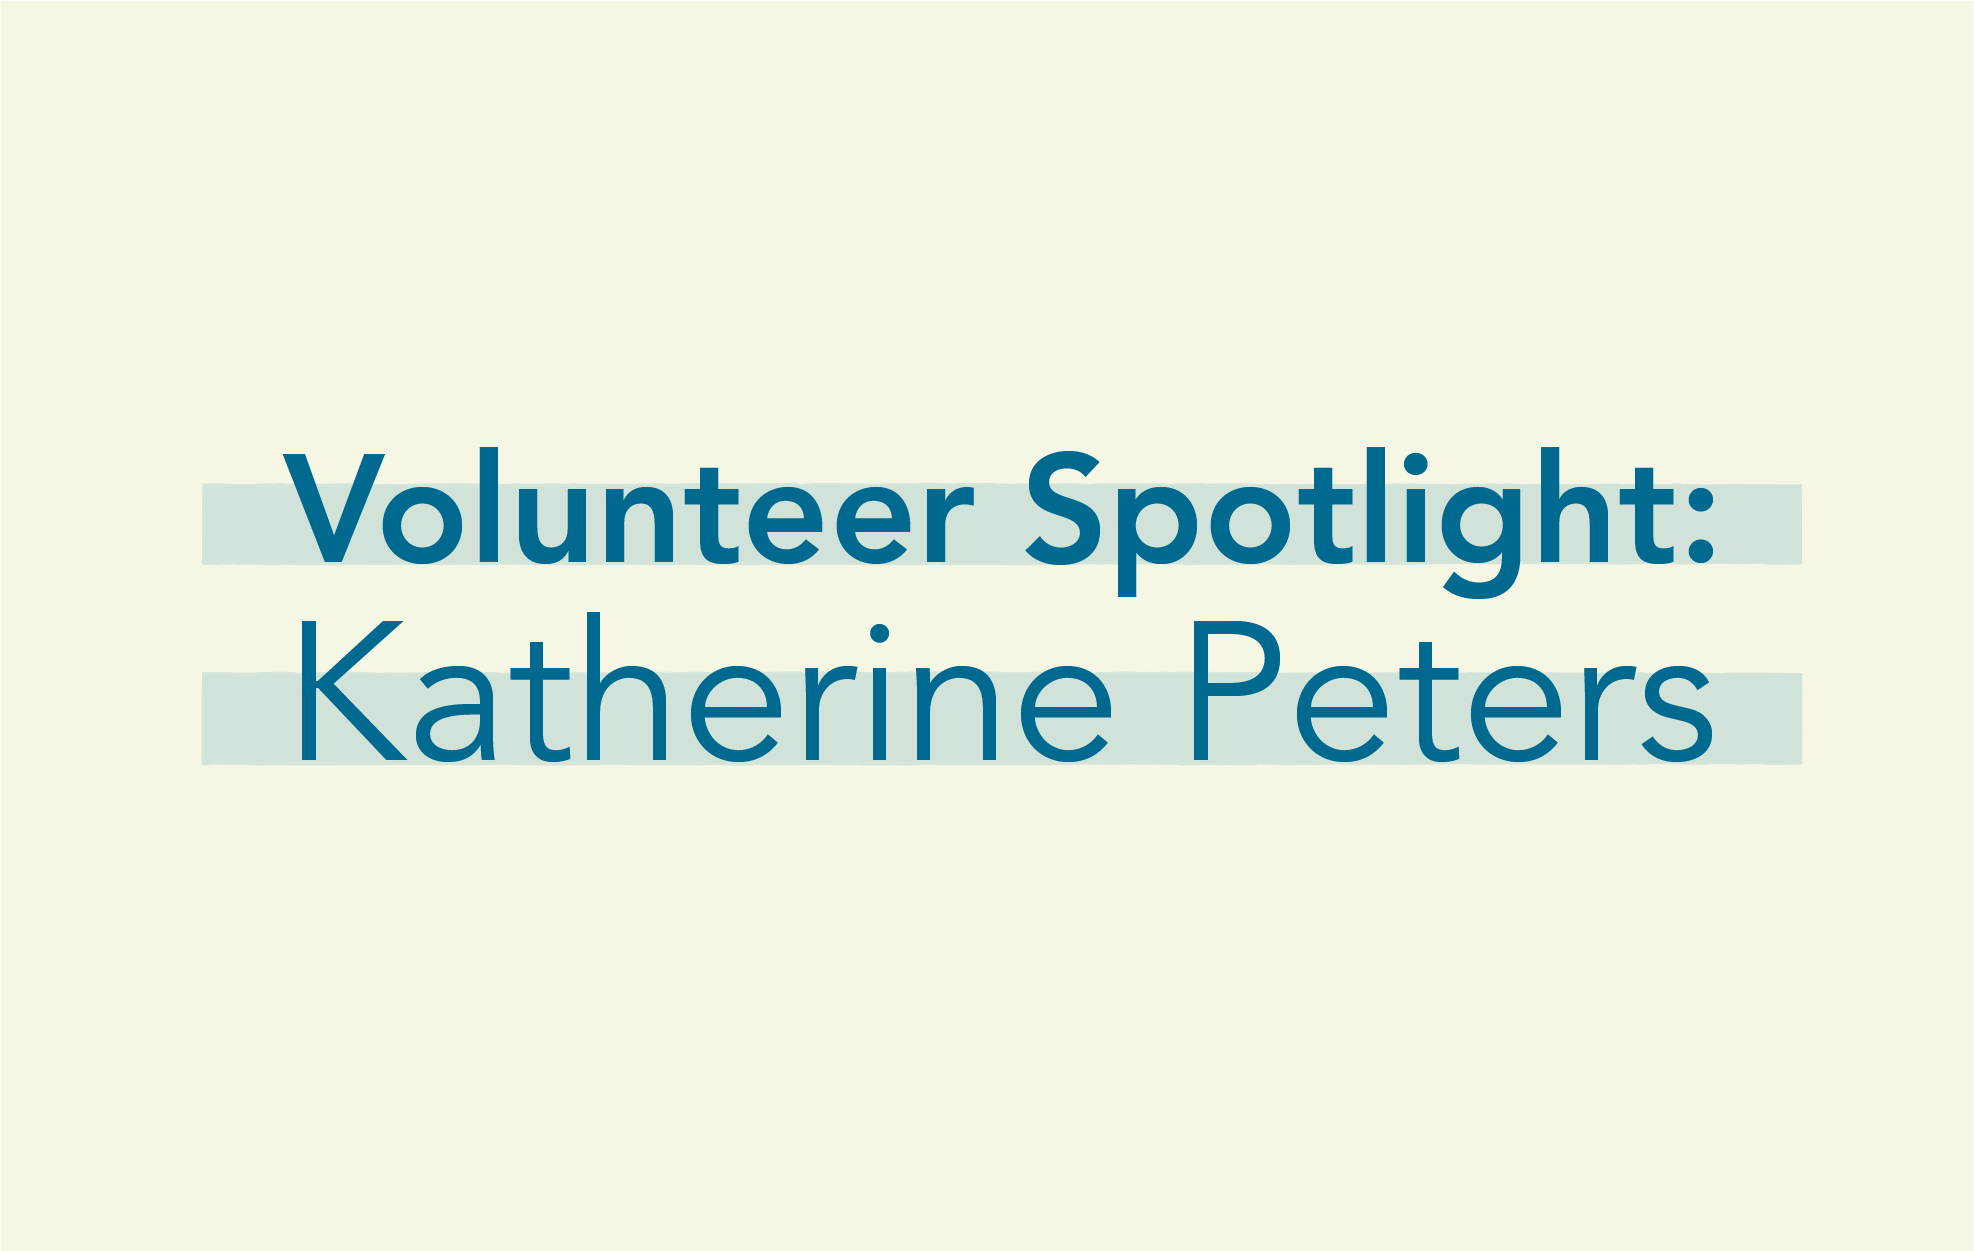 img text: Volunteer Spotlight: Katherine Peters